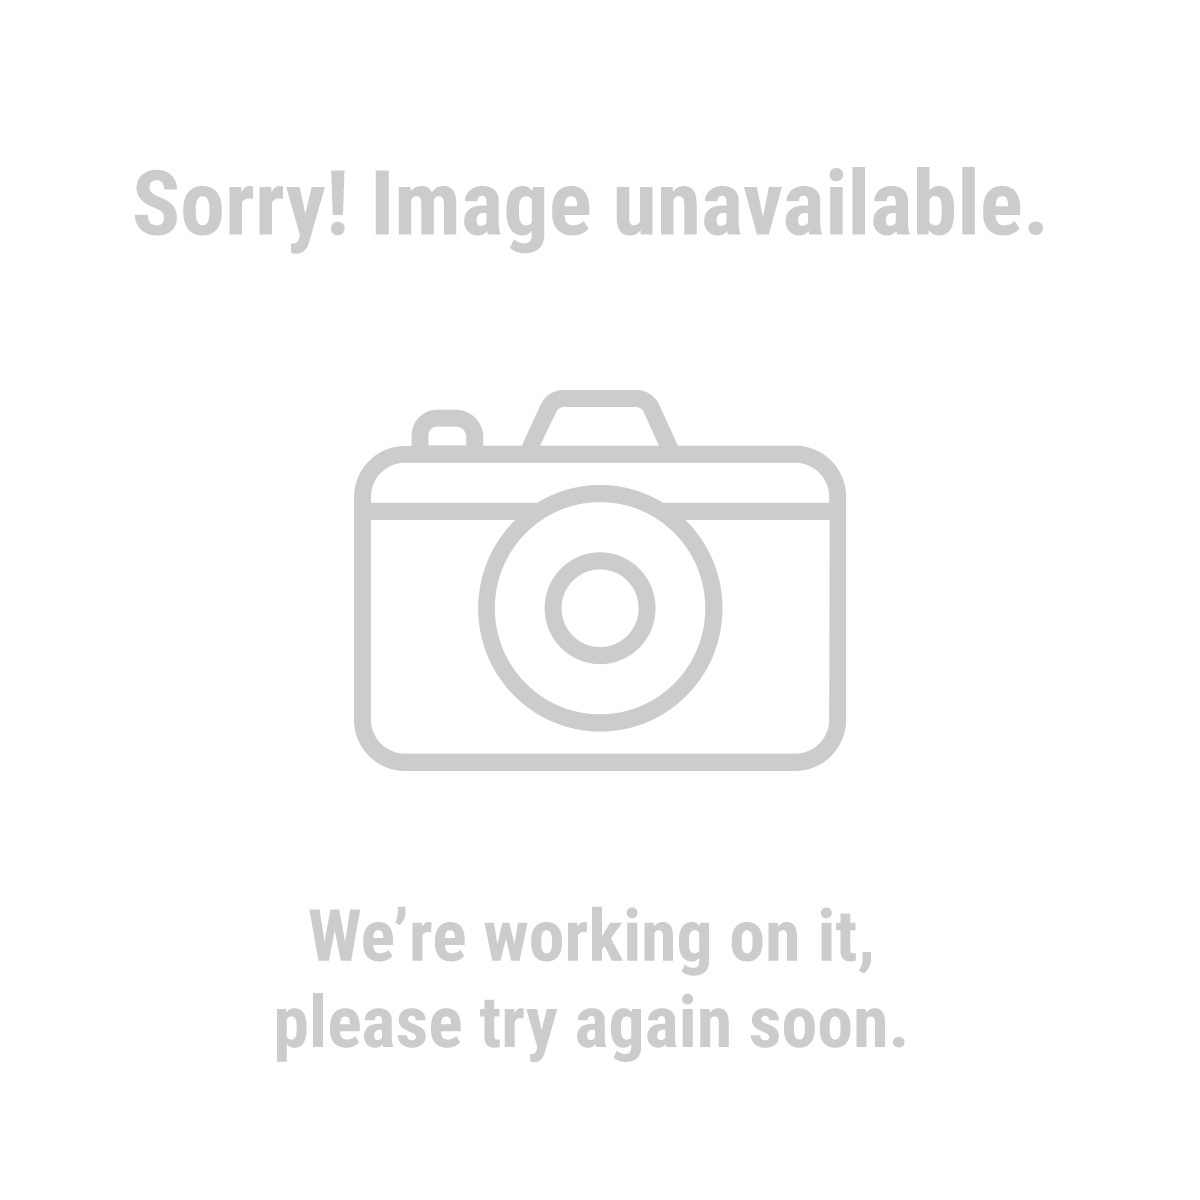 Central Pneumatic 68066 1.8 Horsepower, 17 Gallon, 150 PSI Oilless Air Compressor